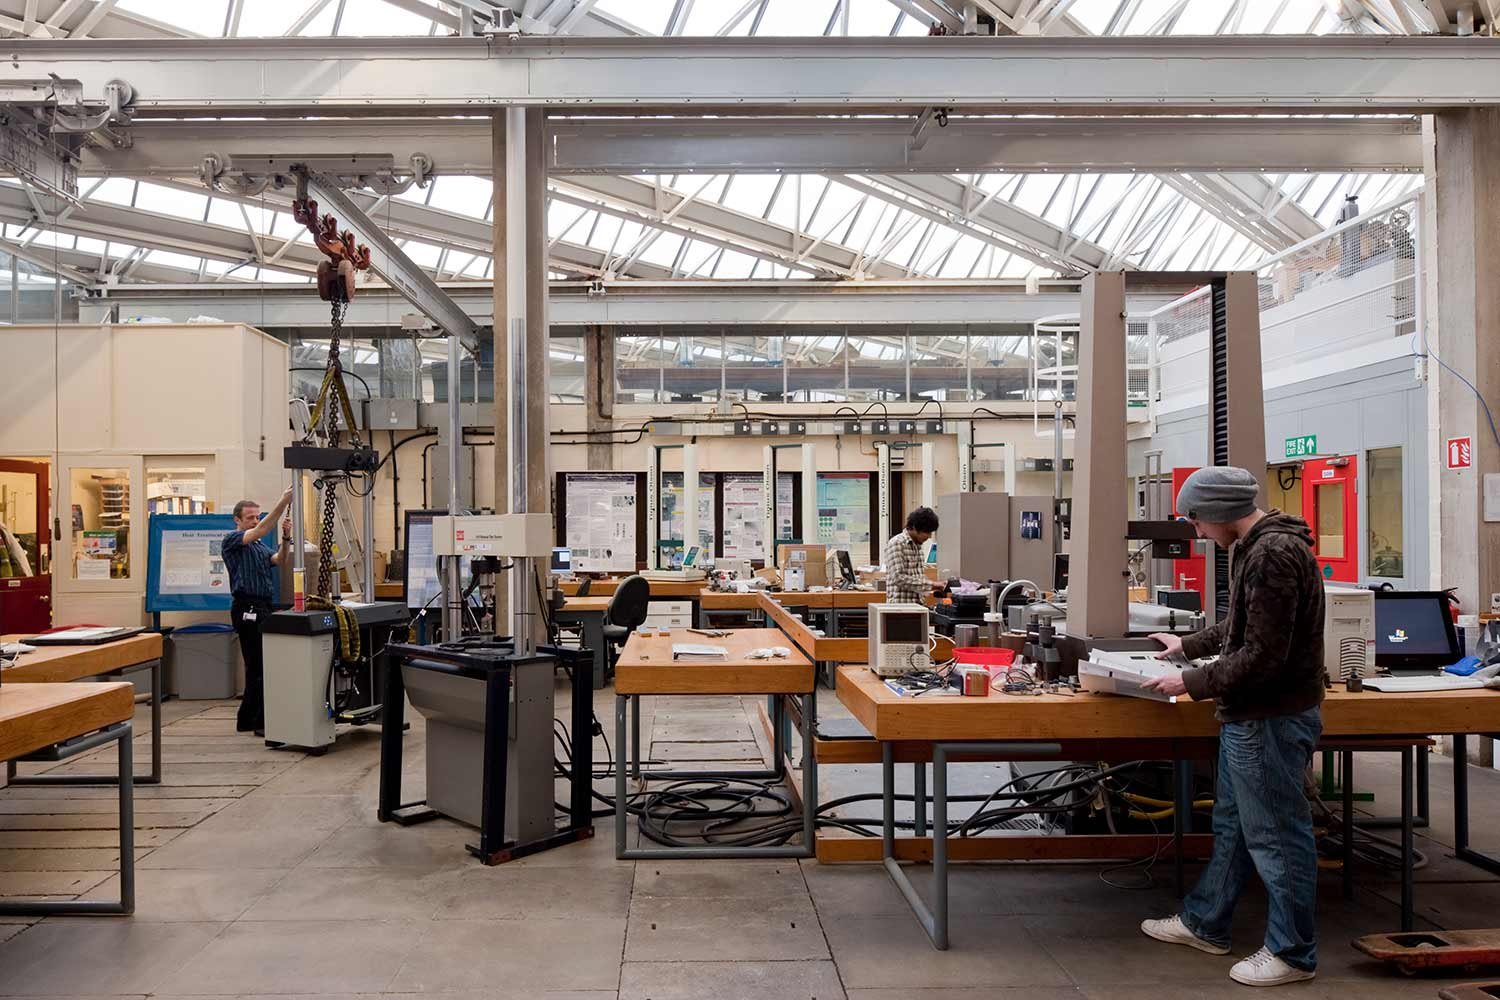 Inside a workshop you can see how the design of the roof windows bring in the light - University of Leicester